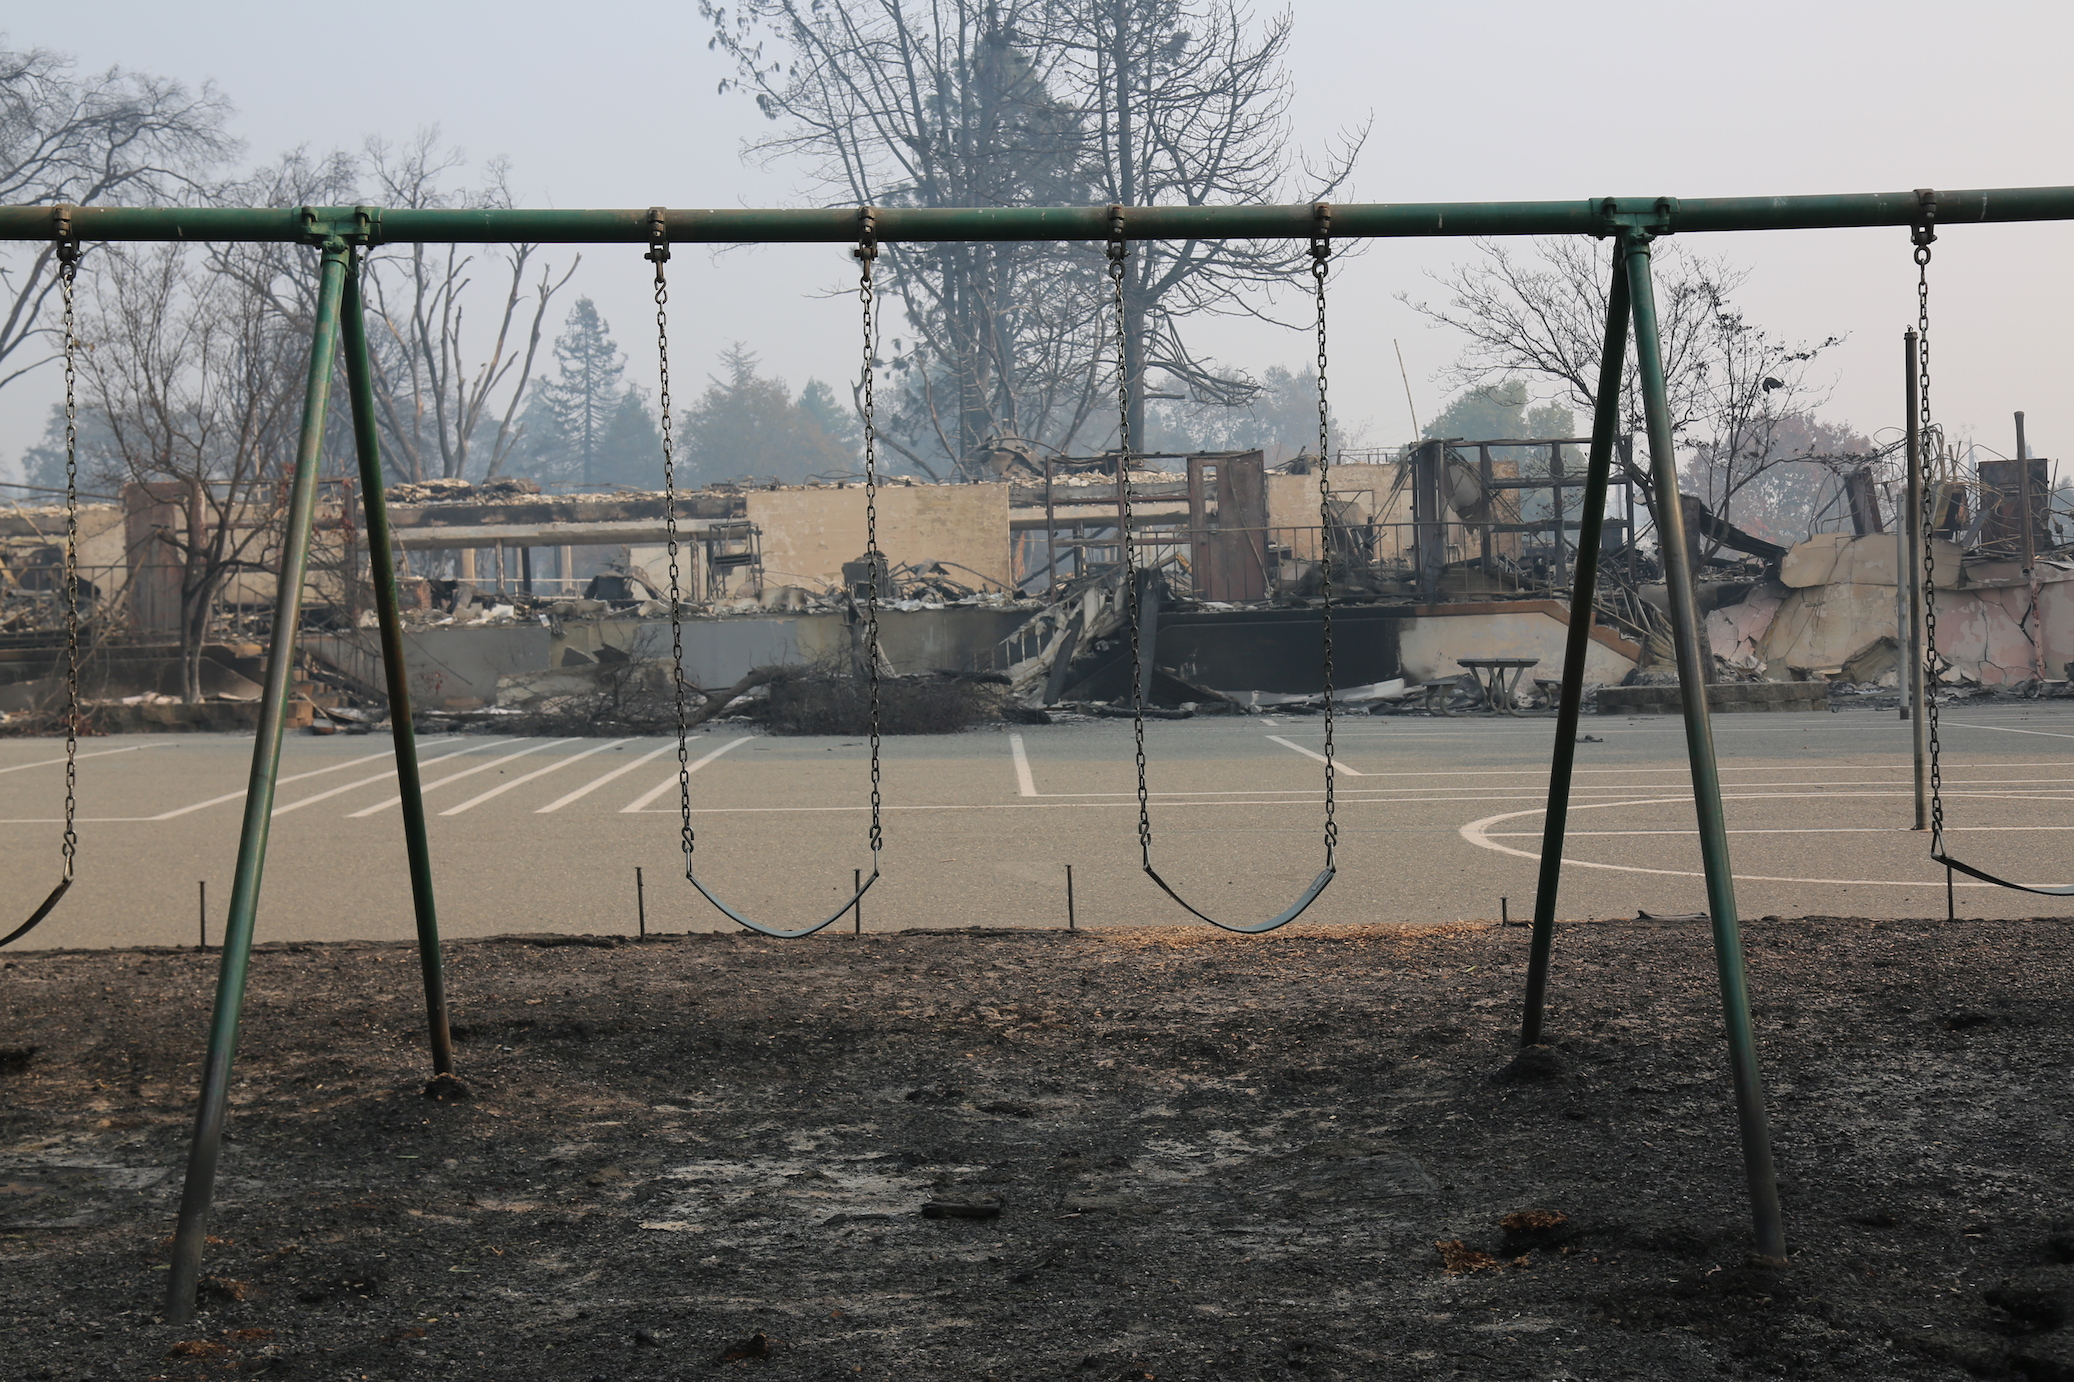 Metal swing sets and monkey bars survived the blaze, but Paradise Elementary's surrounding buildings did not.  Isabella Jibilian/Peninsula Press